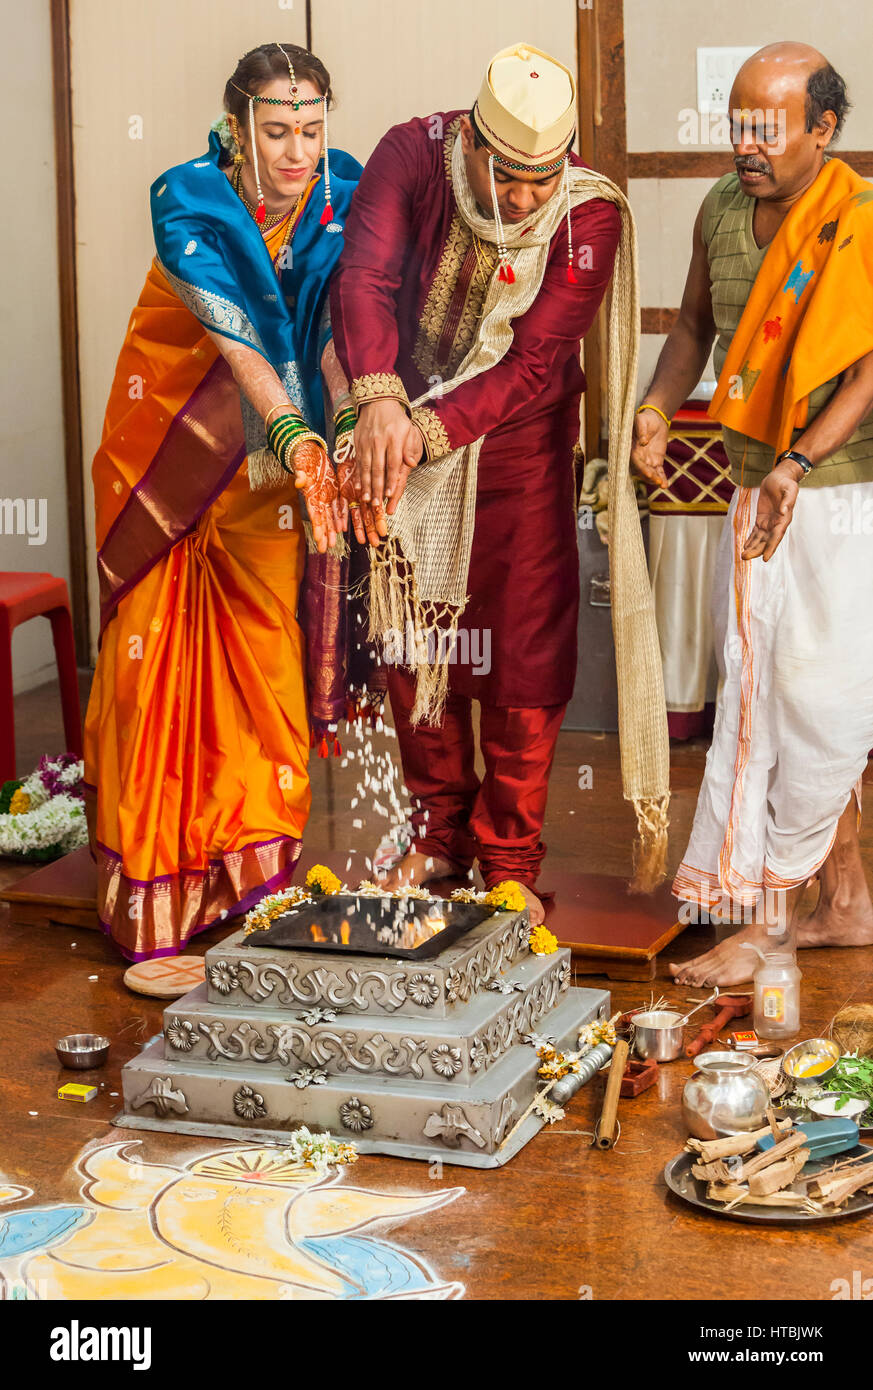 The bride and groom at an Indian wedding making offerings of puffed rice to the holy fire accompanied by the priest. - Stock Image